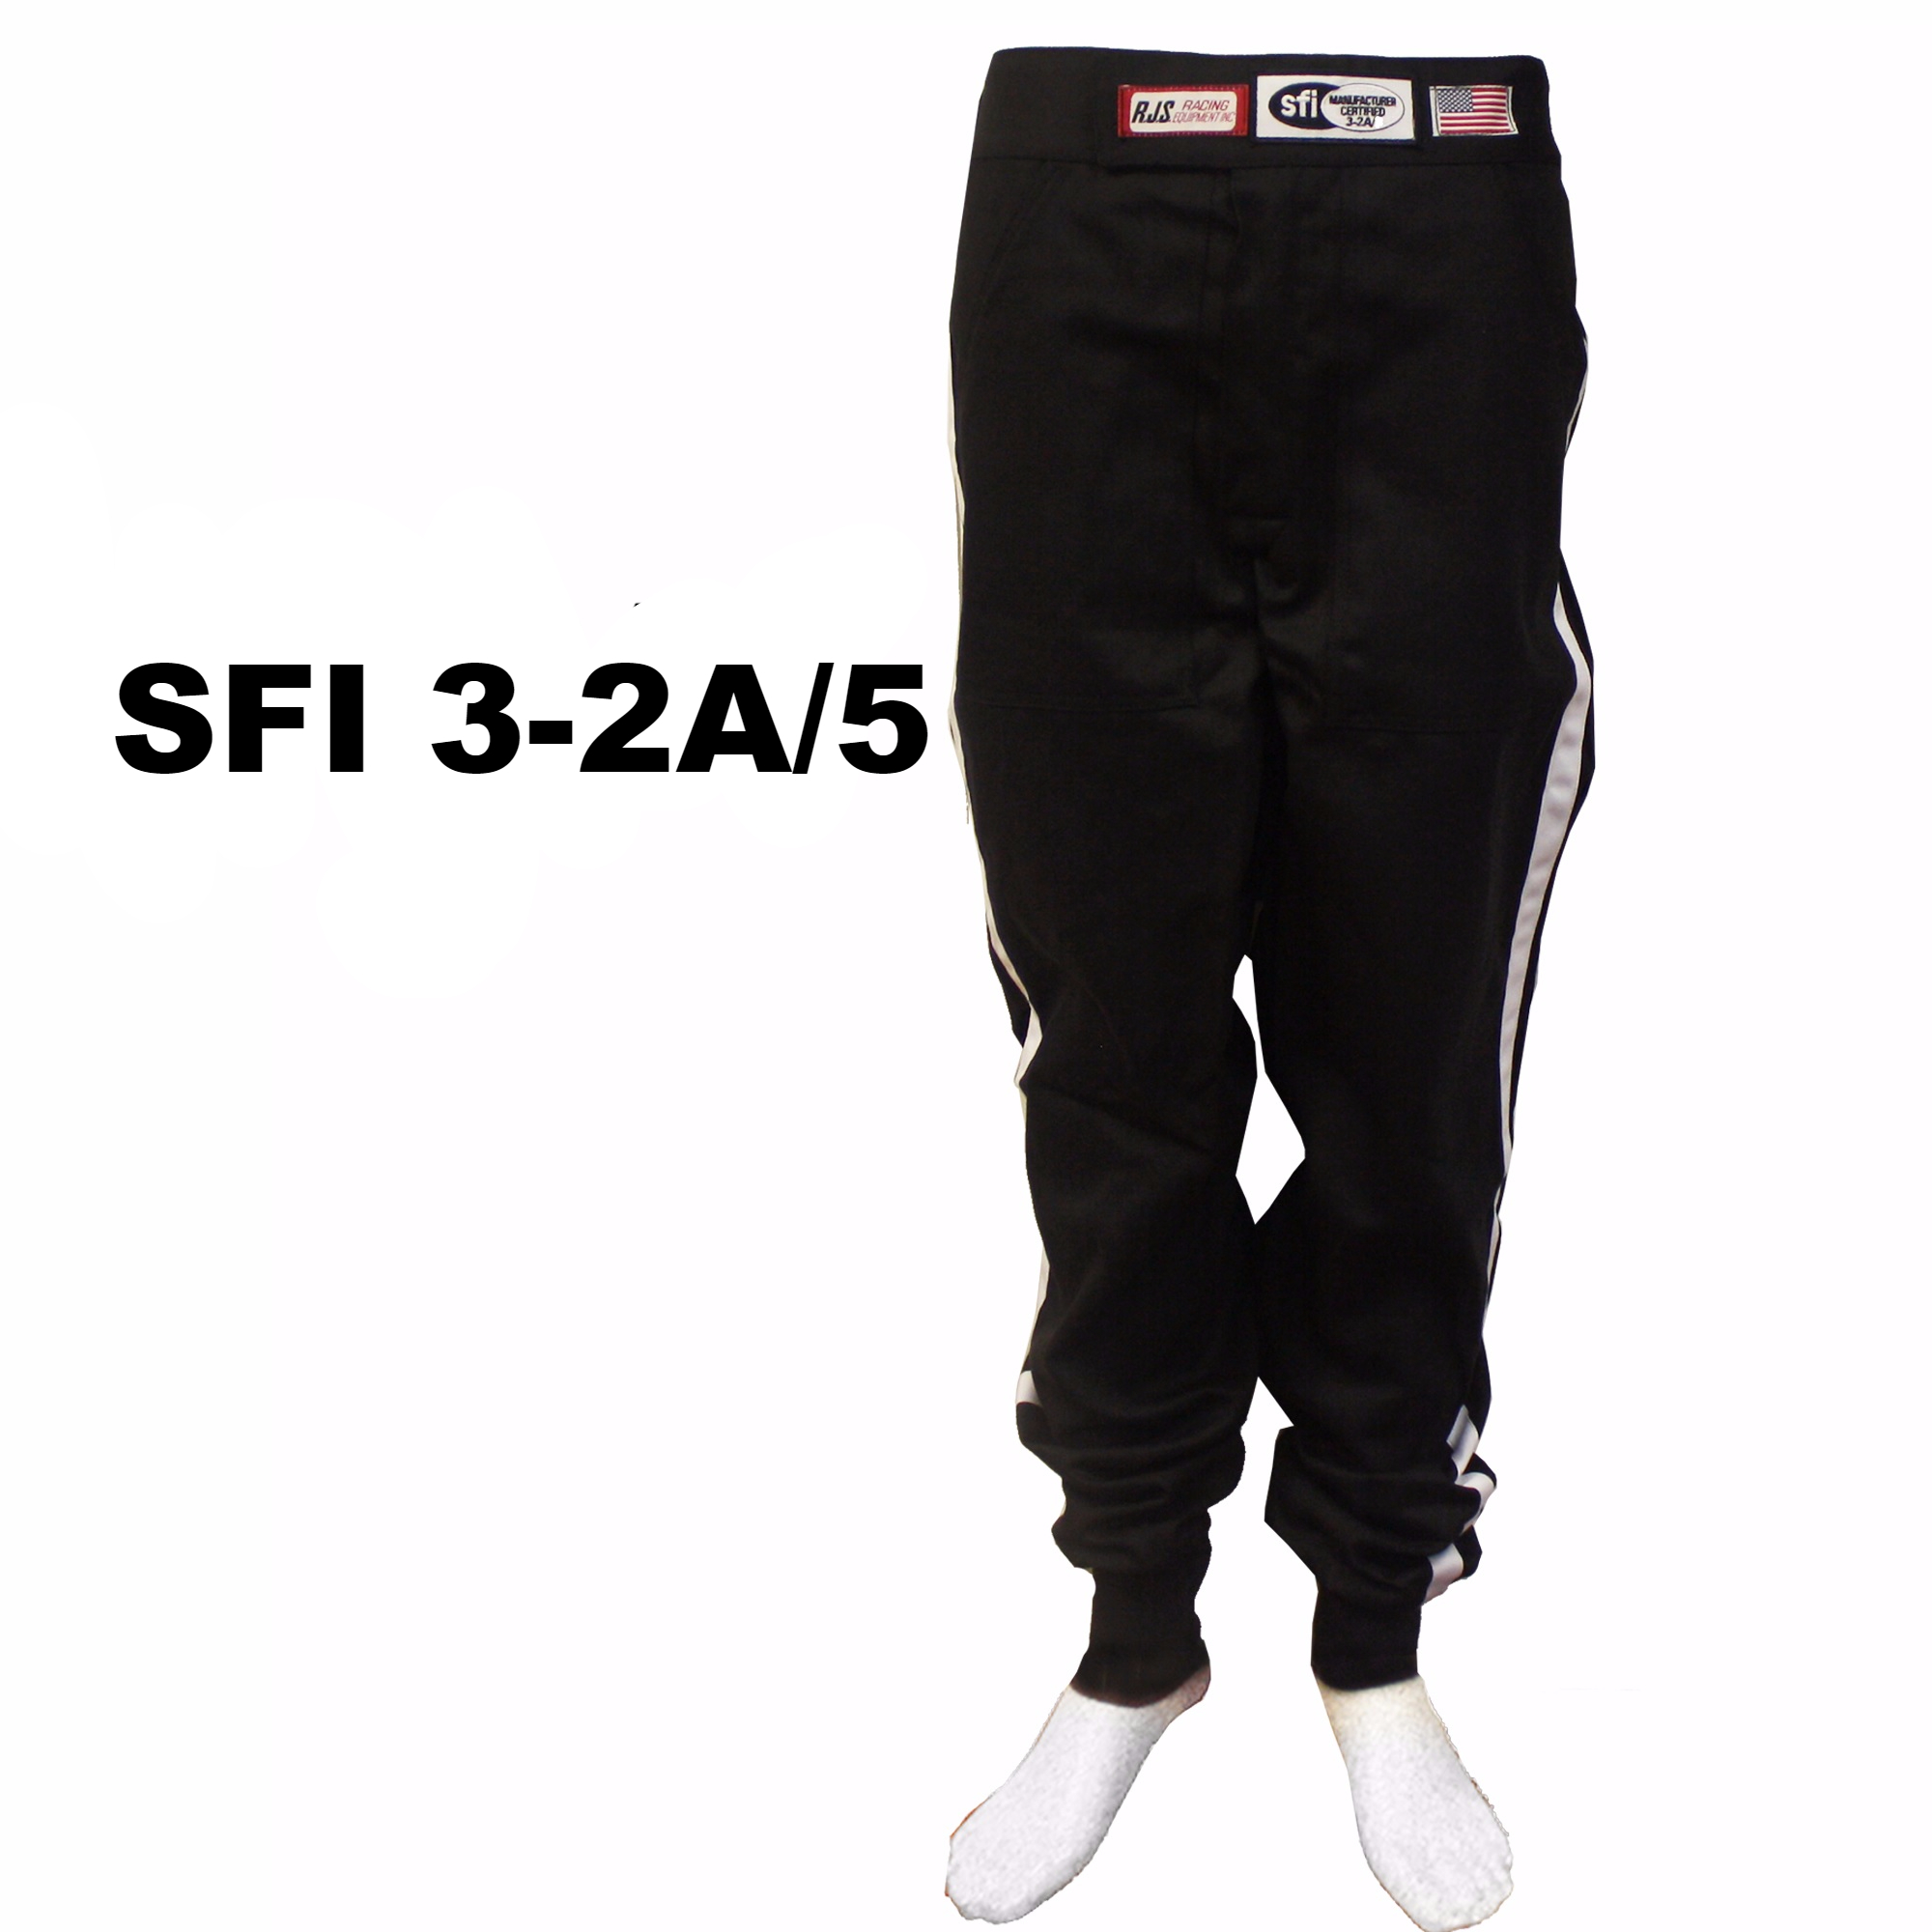 FIRE SUIT RACING PANTS BLACK WHITE STRIPE ADULT LARGE SFI 3-2A//1 RJS RACING